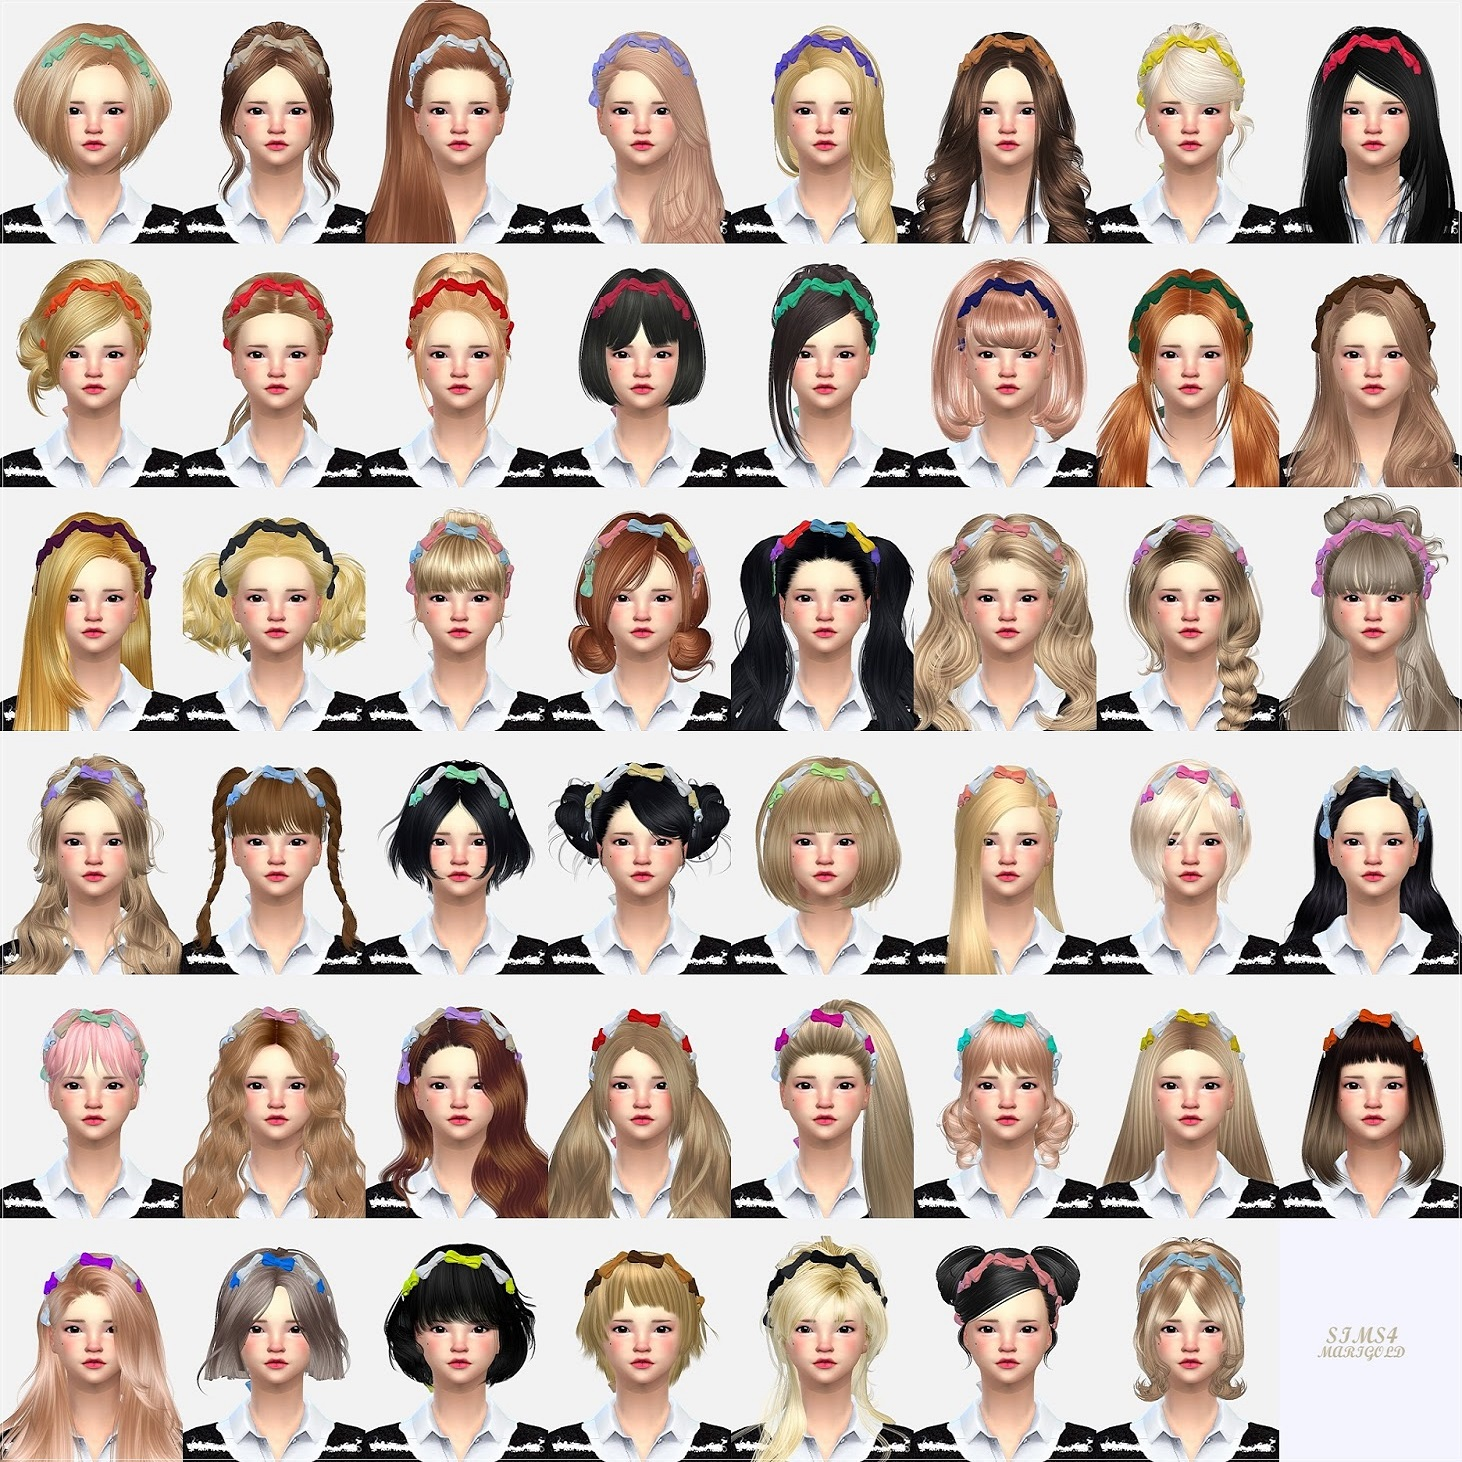 The sims 4 hair accessories - Labels Accessories All Accessories Hair Accessories Masks